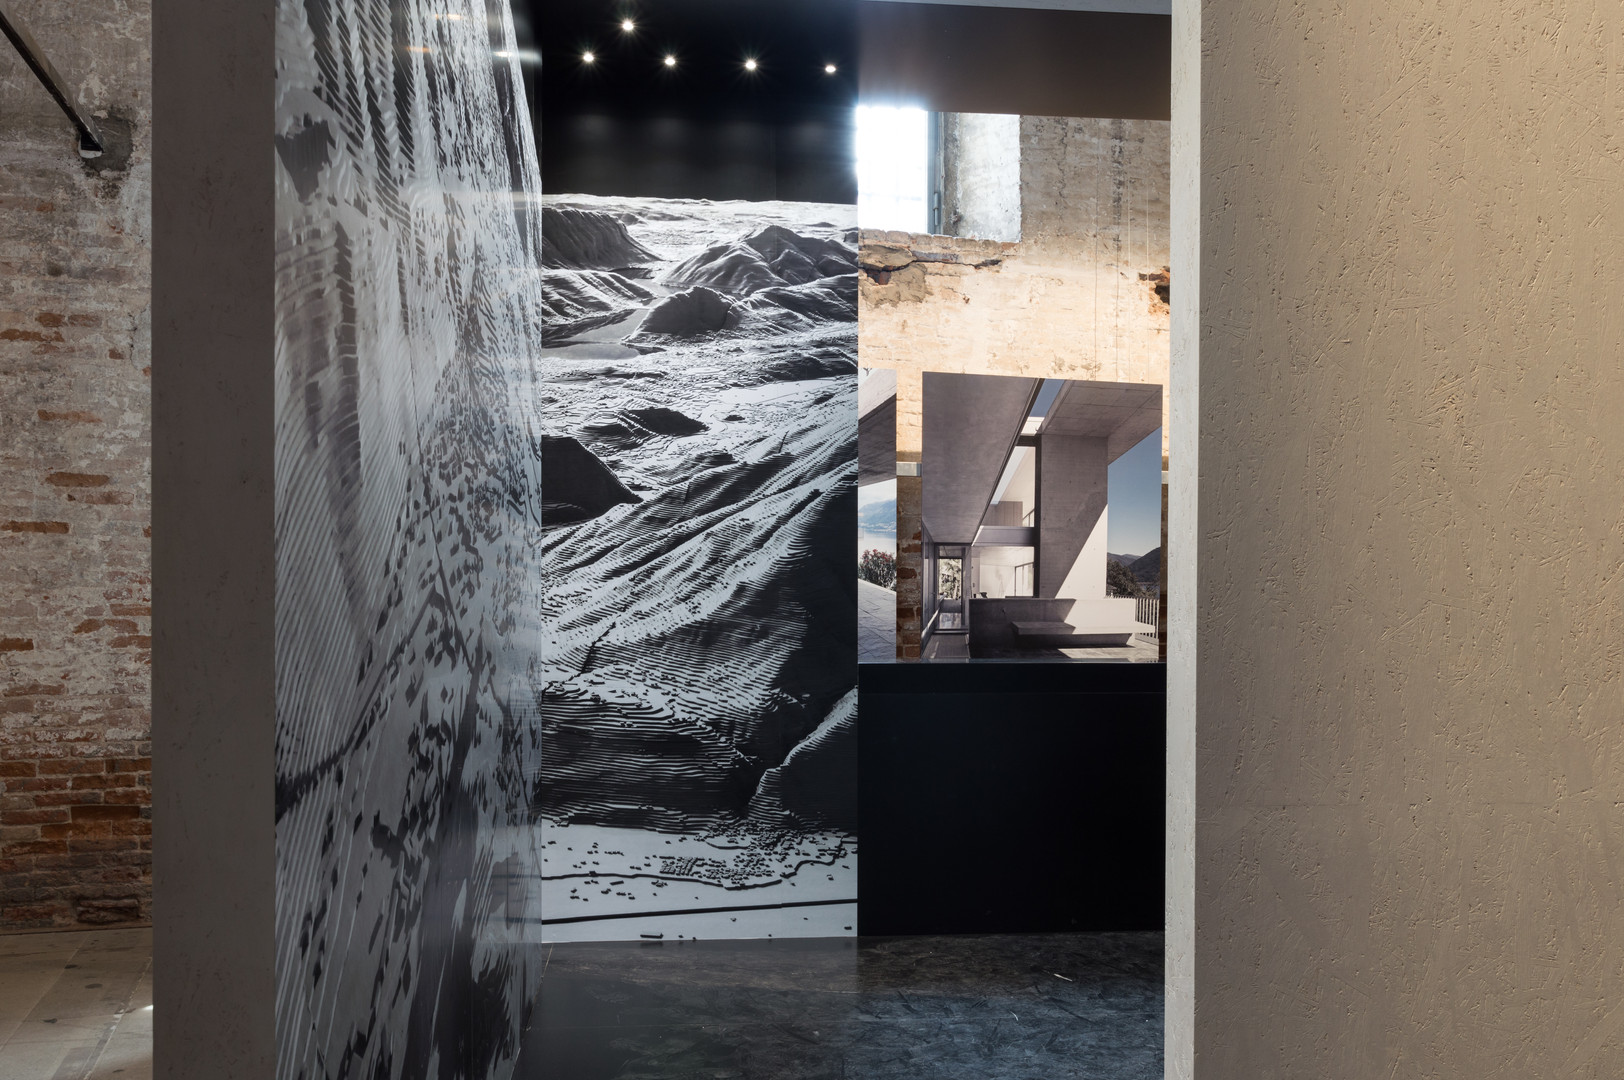 Topographical images as part of the pavilion designed by Mario Botta Architetti at the Venice Biennale 2018